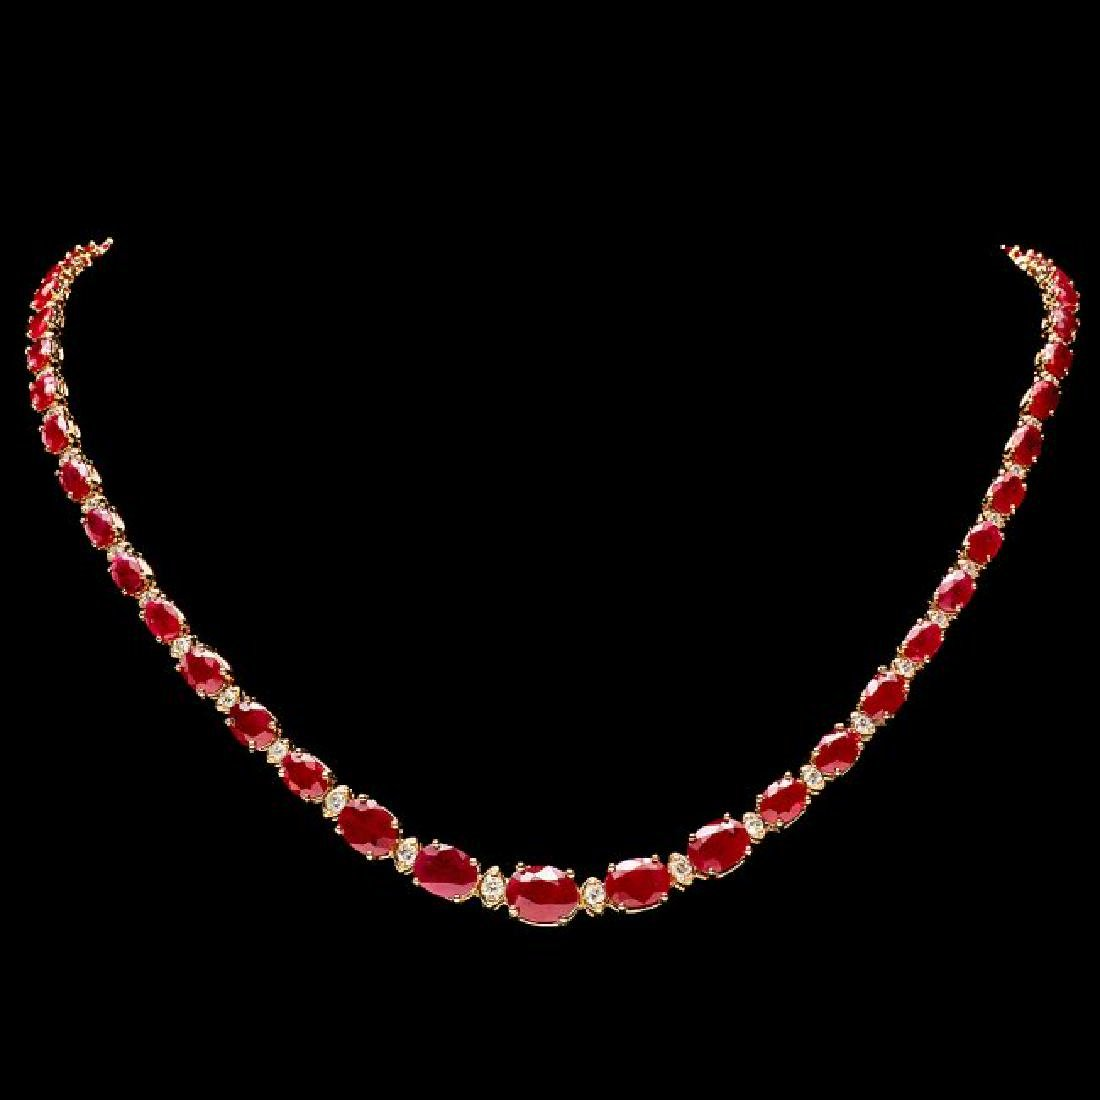 14k Gold 30.00ct Ruby 1.60ct Diamond Necklace